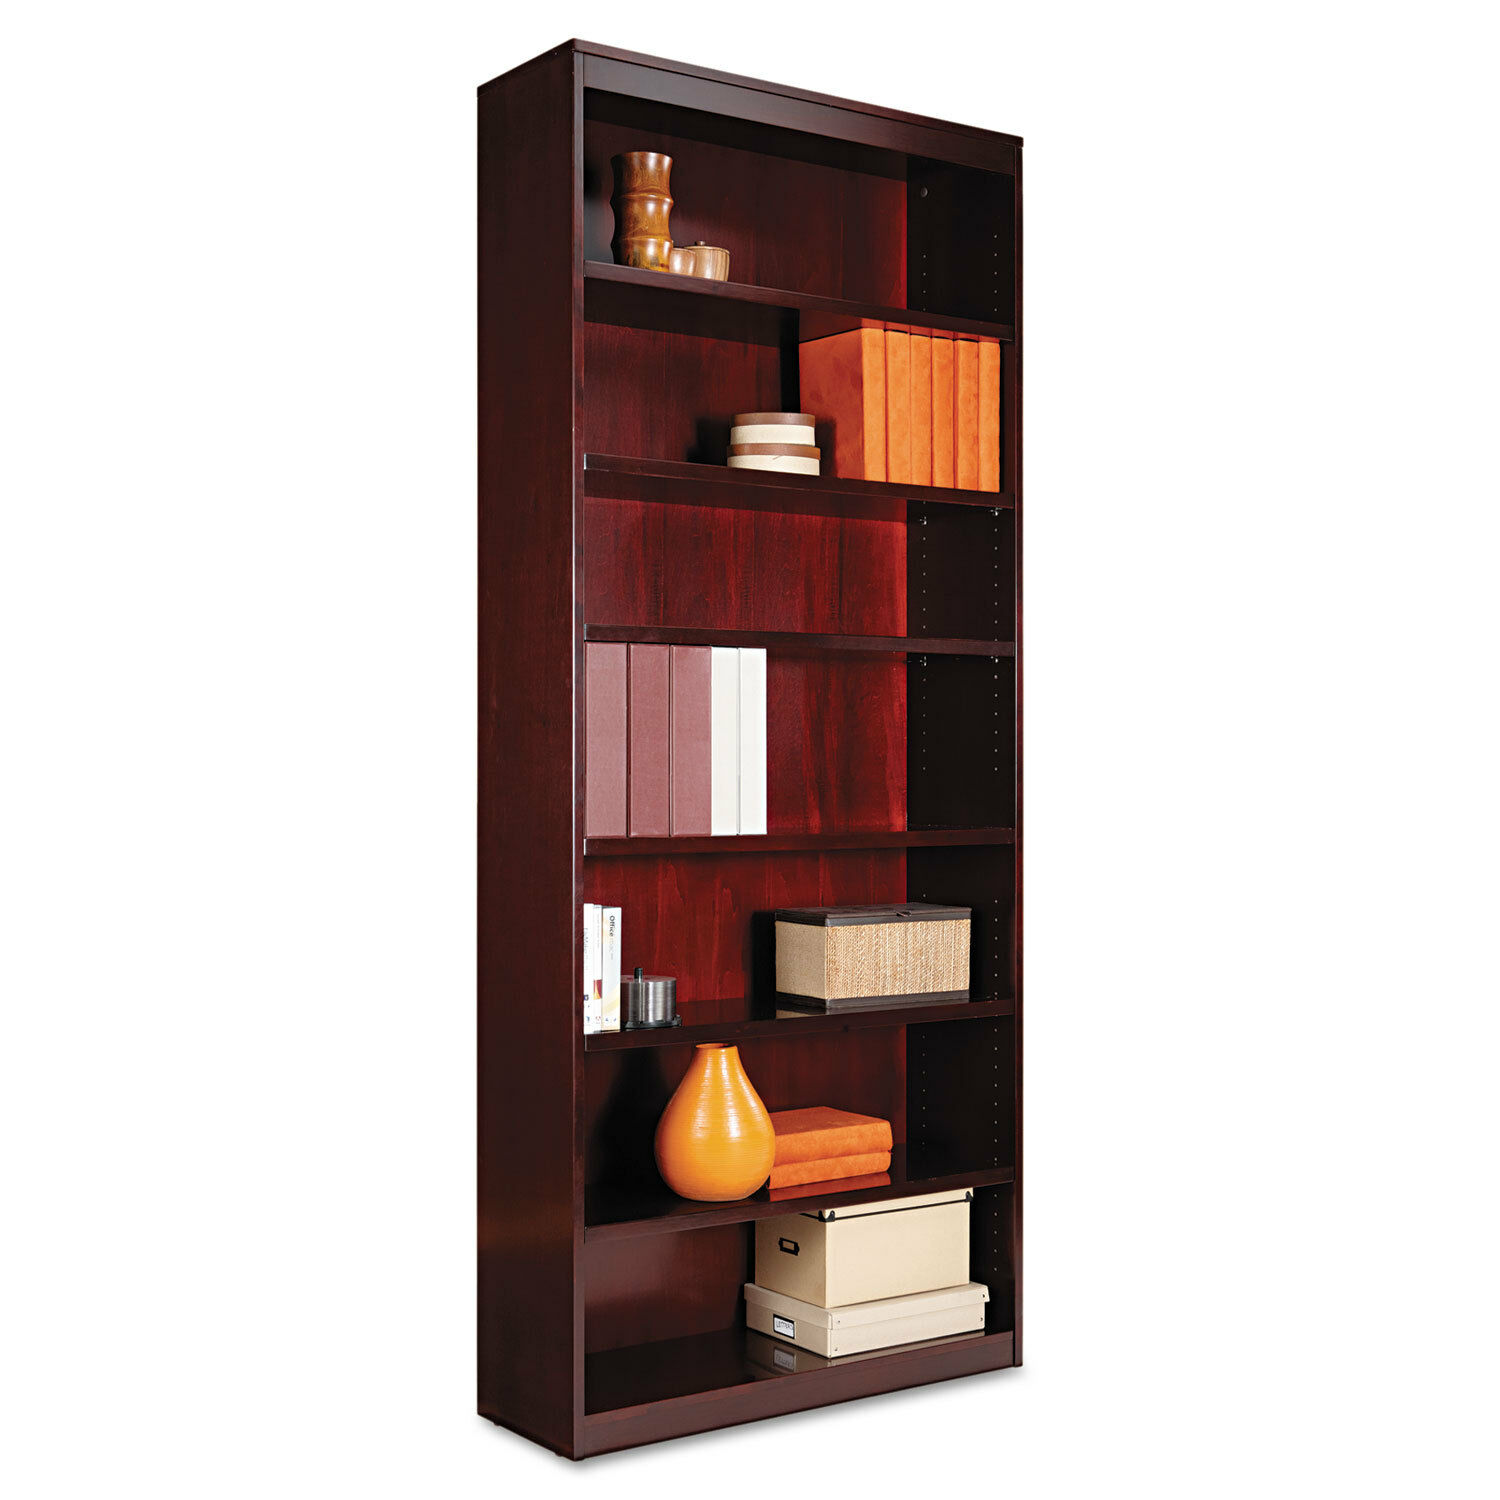 and aspenhome furniture by bookcases with bookcase door wolf return desk pc products inch lighted drawers hutch glass adjustable shelves credenza full